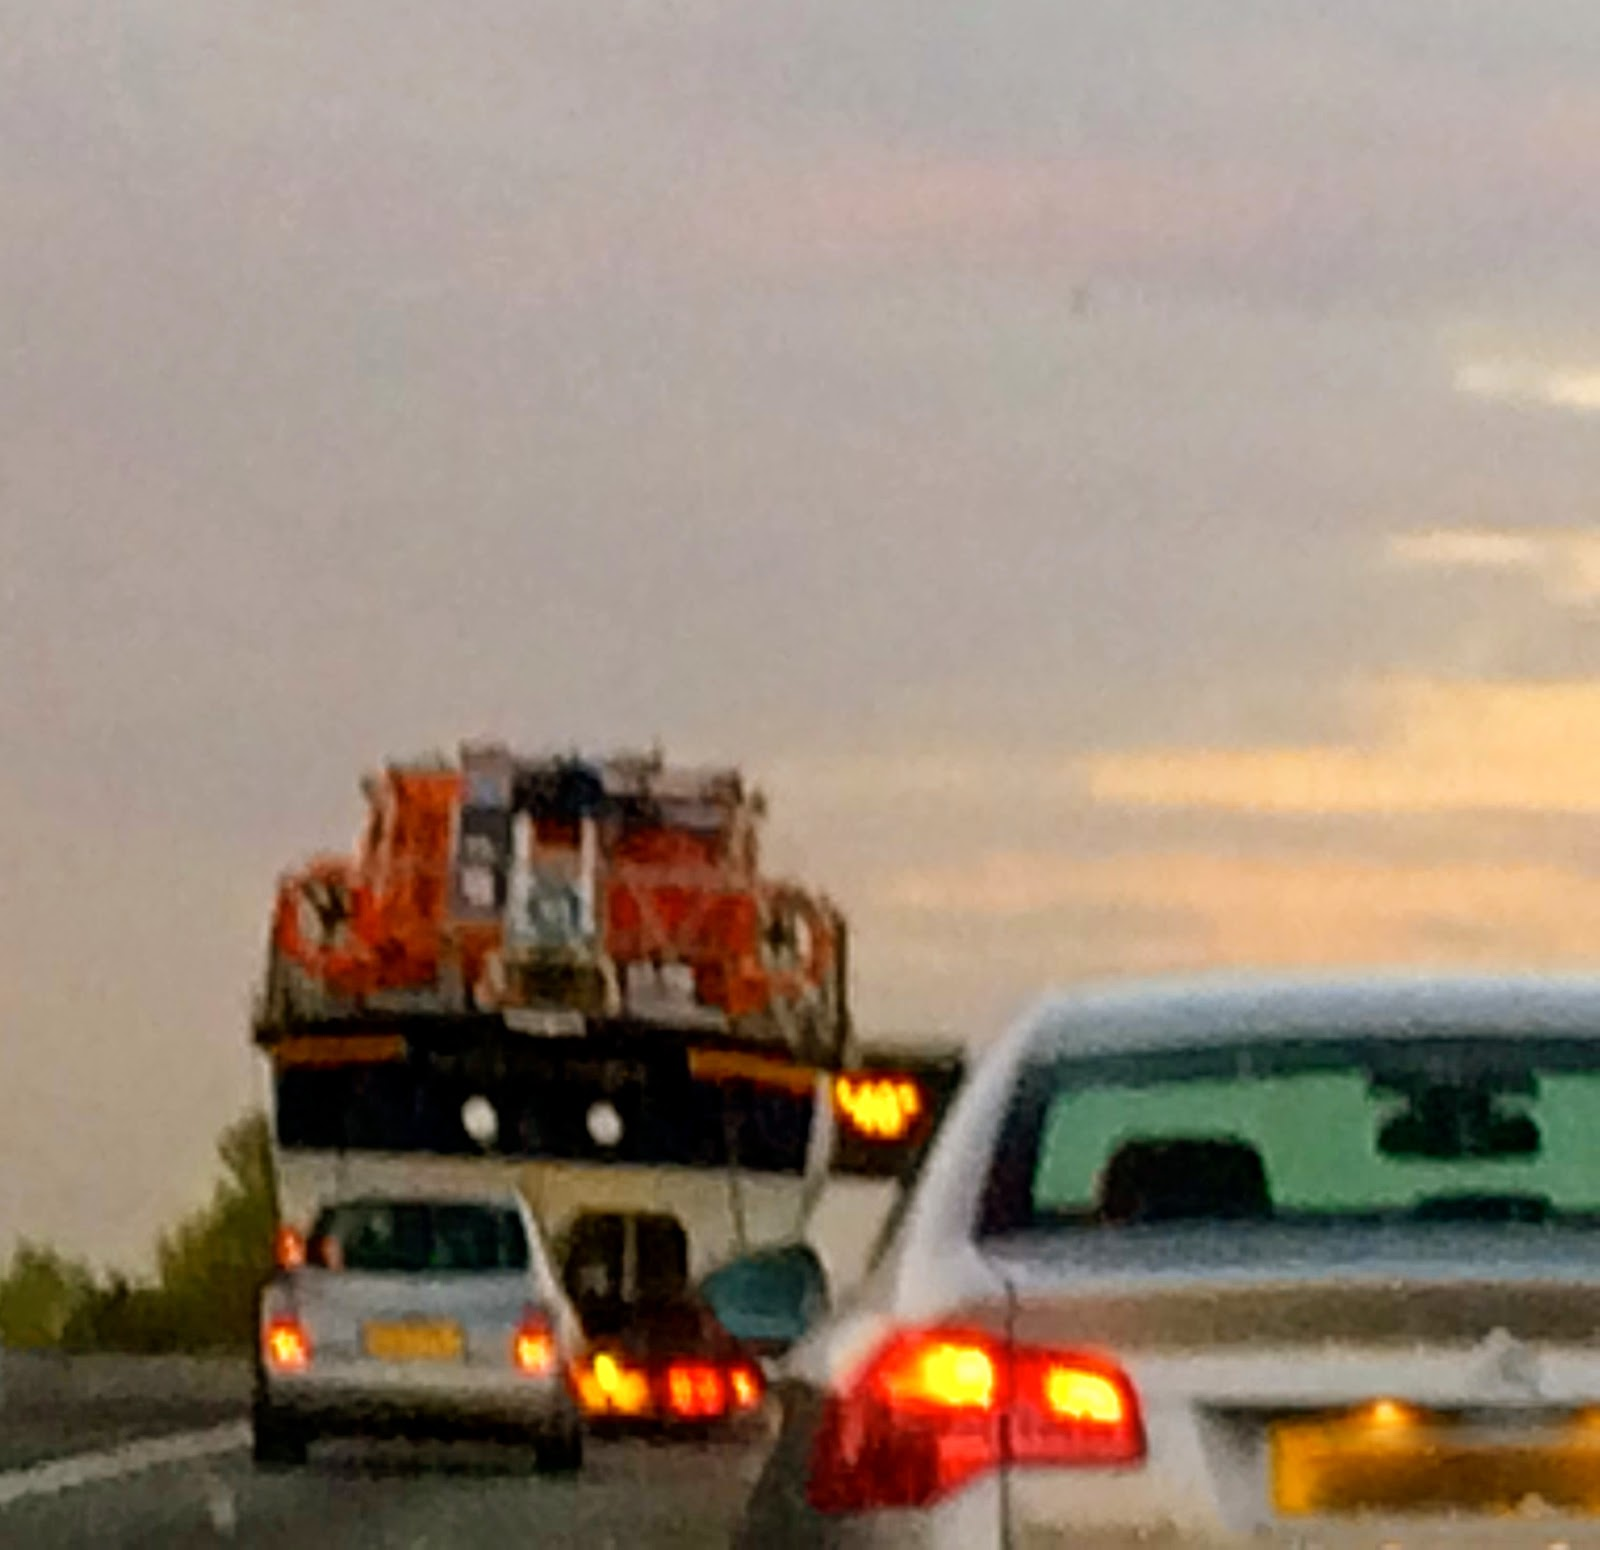 lifeboat in traffic jam on M3, UK